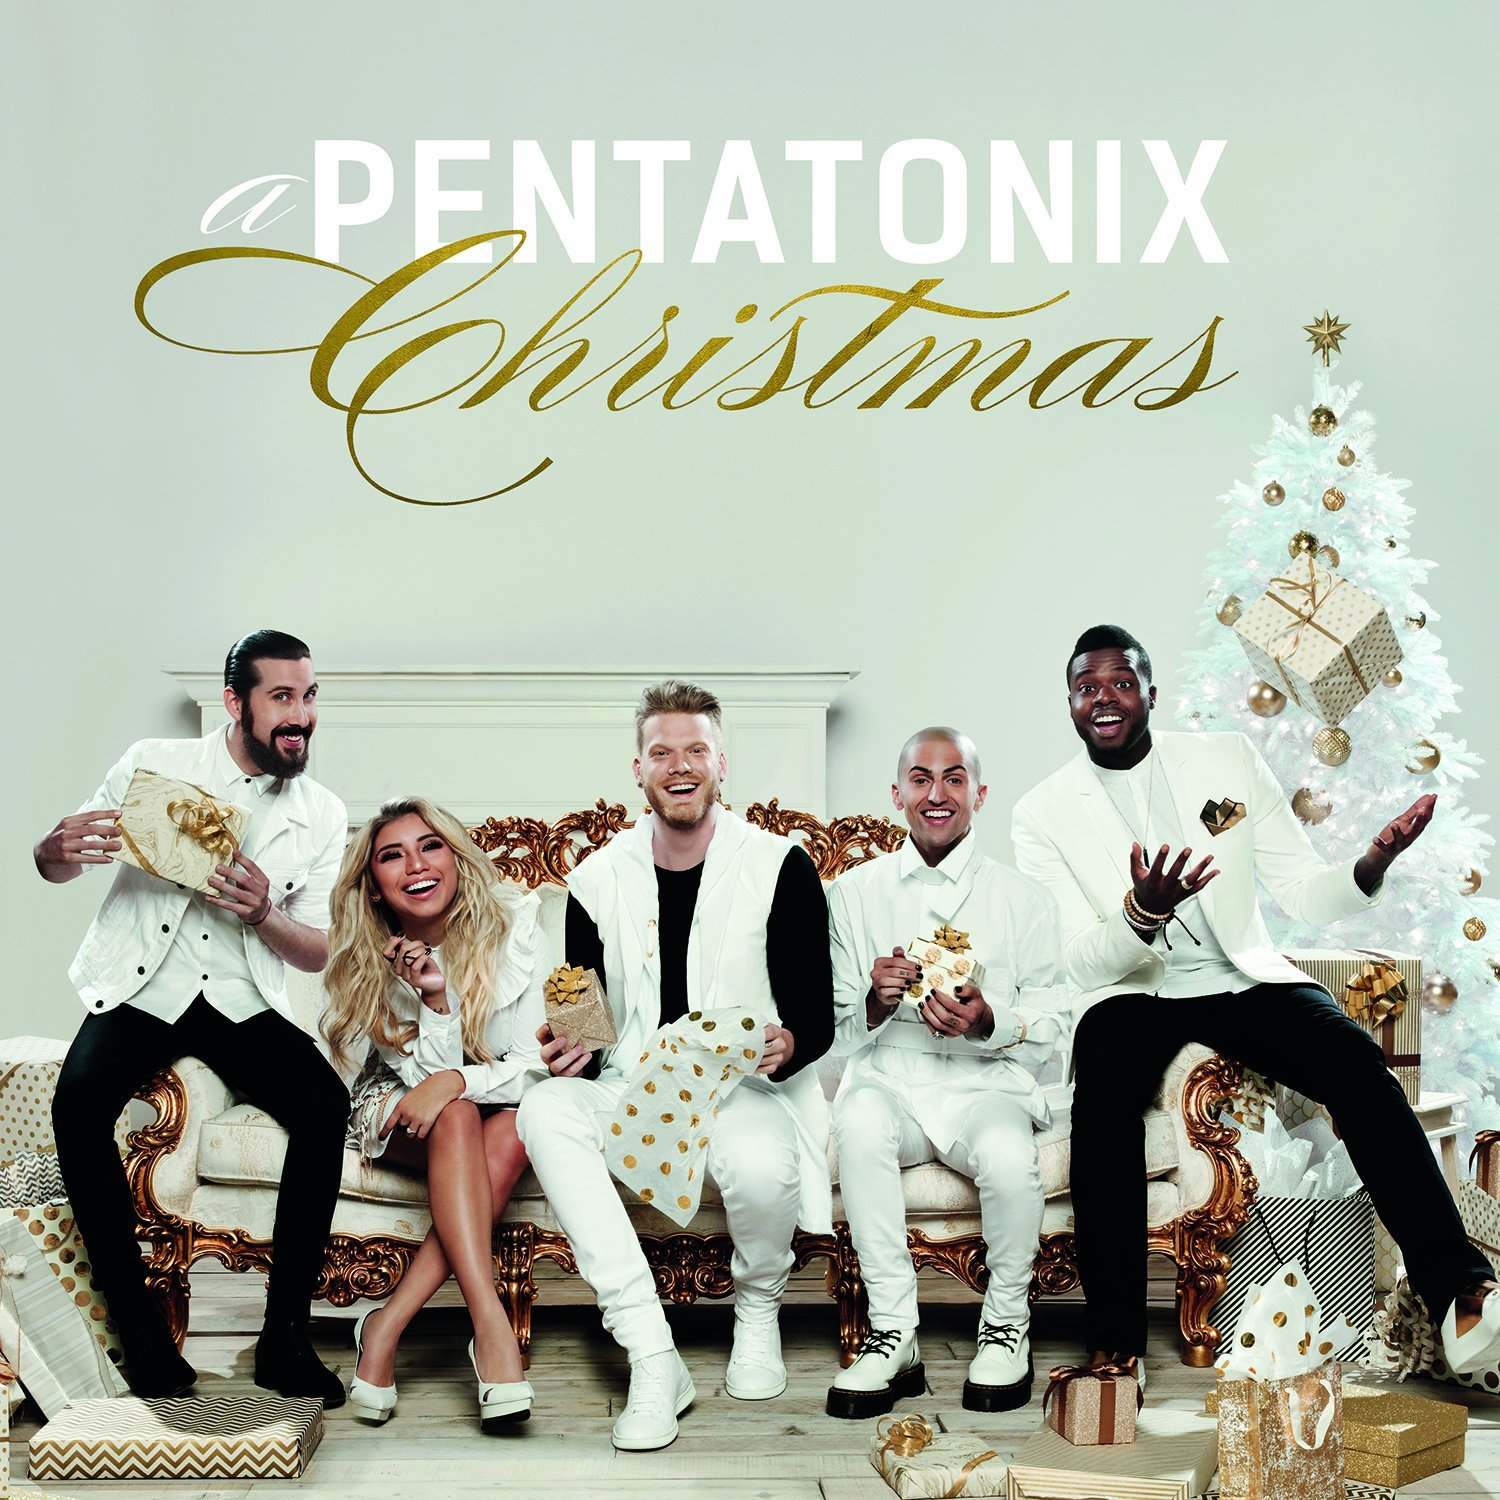 Billboard 200 Grooves: 'A Pentatonix Christmas' Remains at No. 1